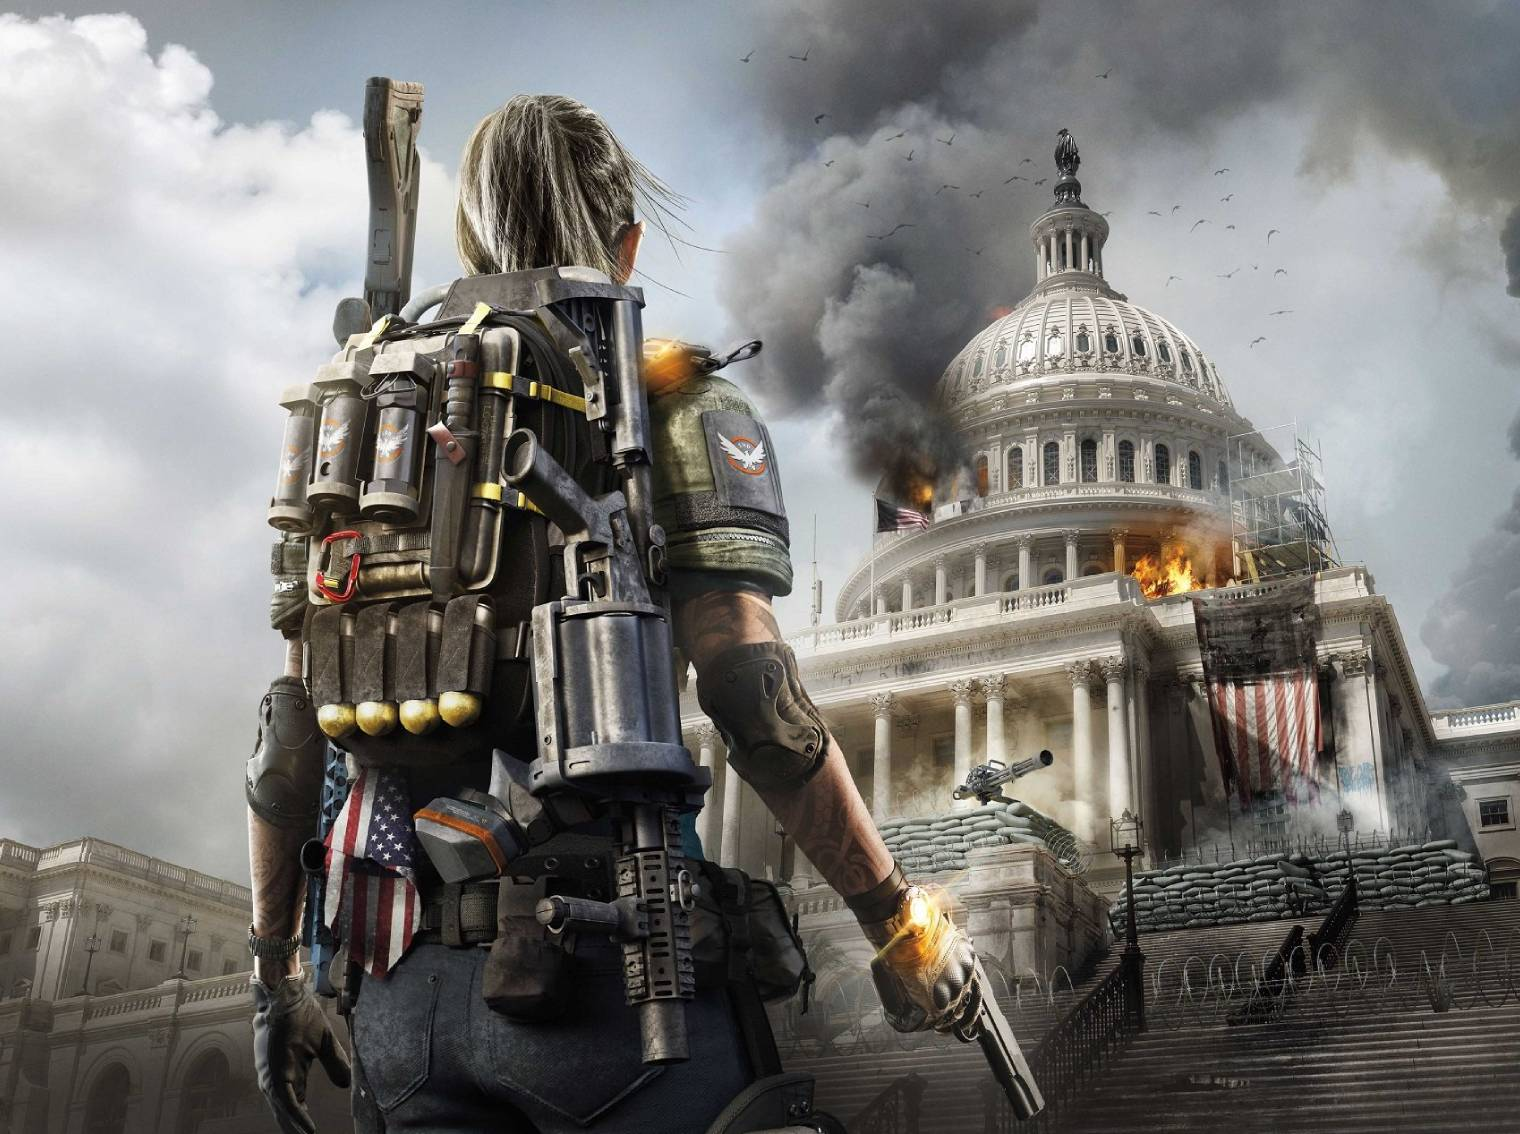 should politics have a place in gaming